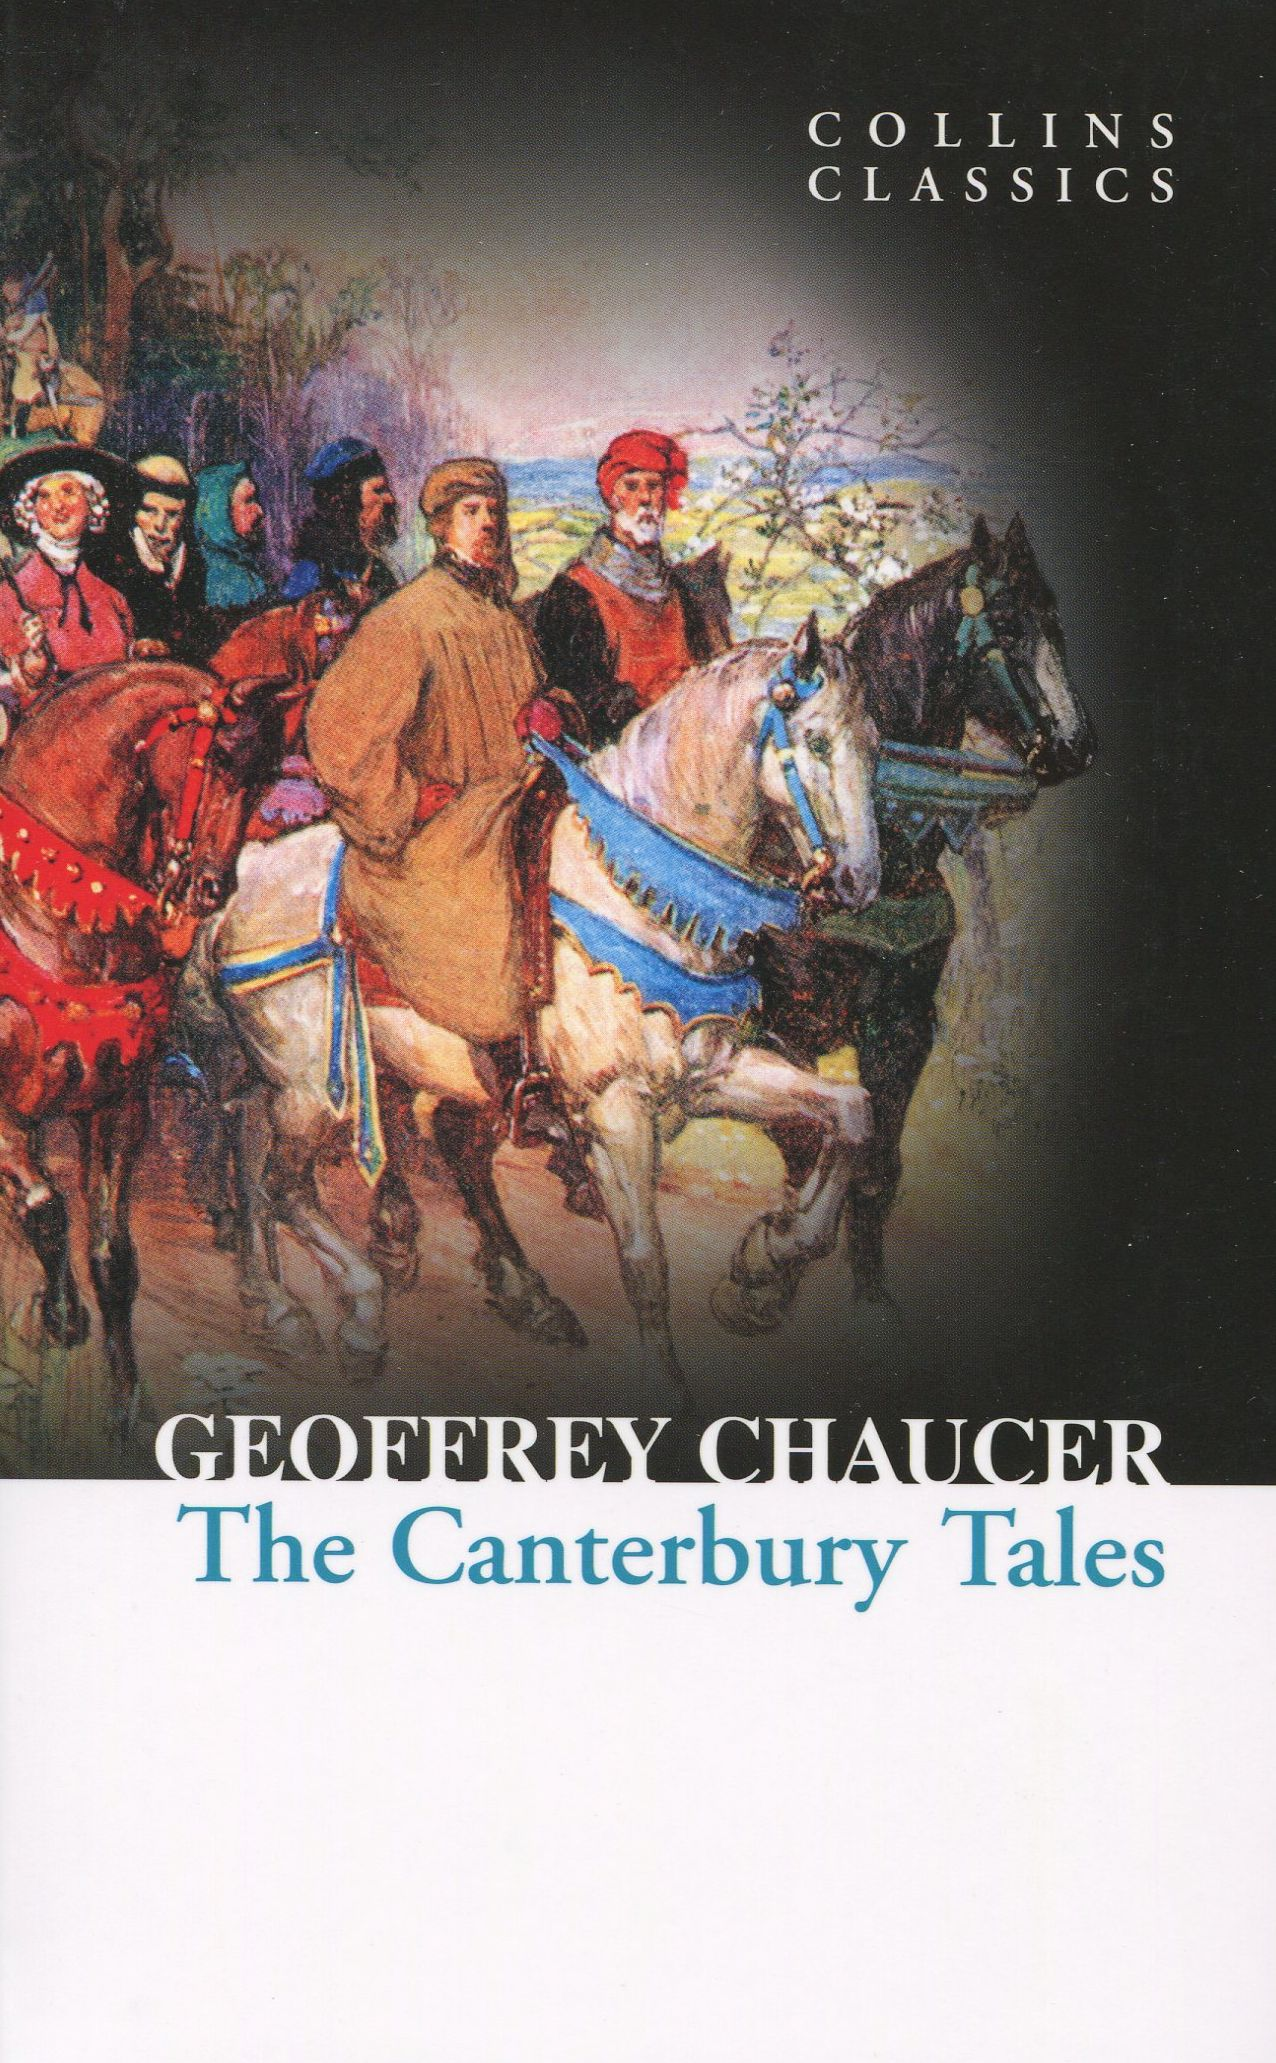 a theme of different types of love on the book of canterbury tales Background class, lies, and religion are prominent themes in geoffrey chaucer's canterbury tales, a fifteenth-century english poem considered one of the most important books in english literature.